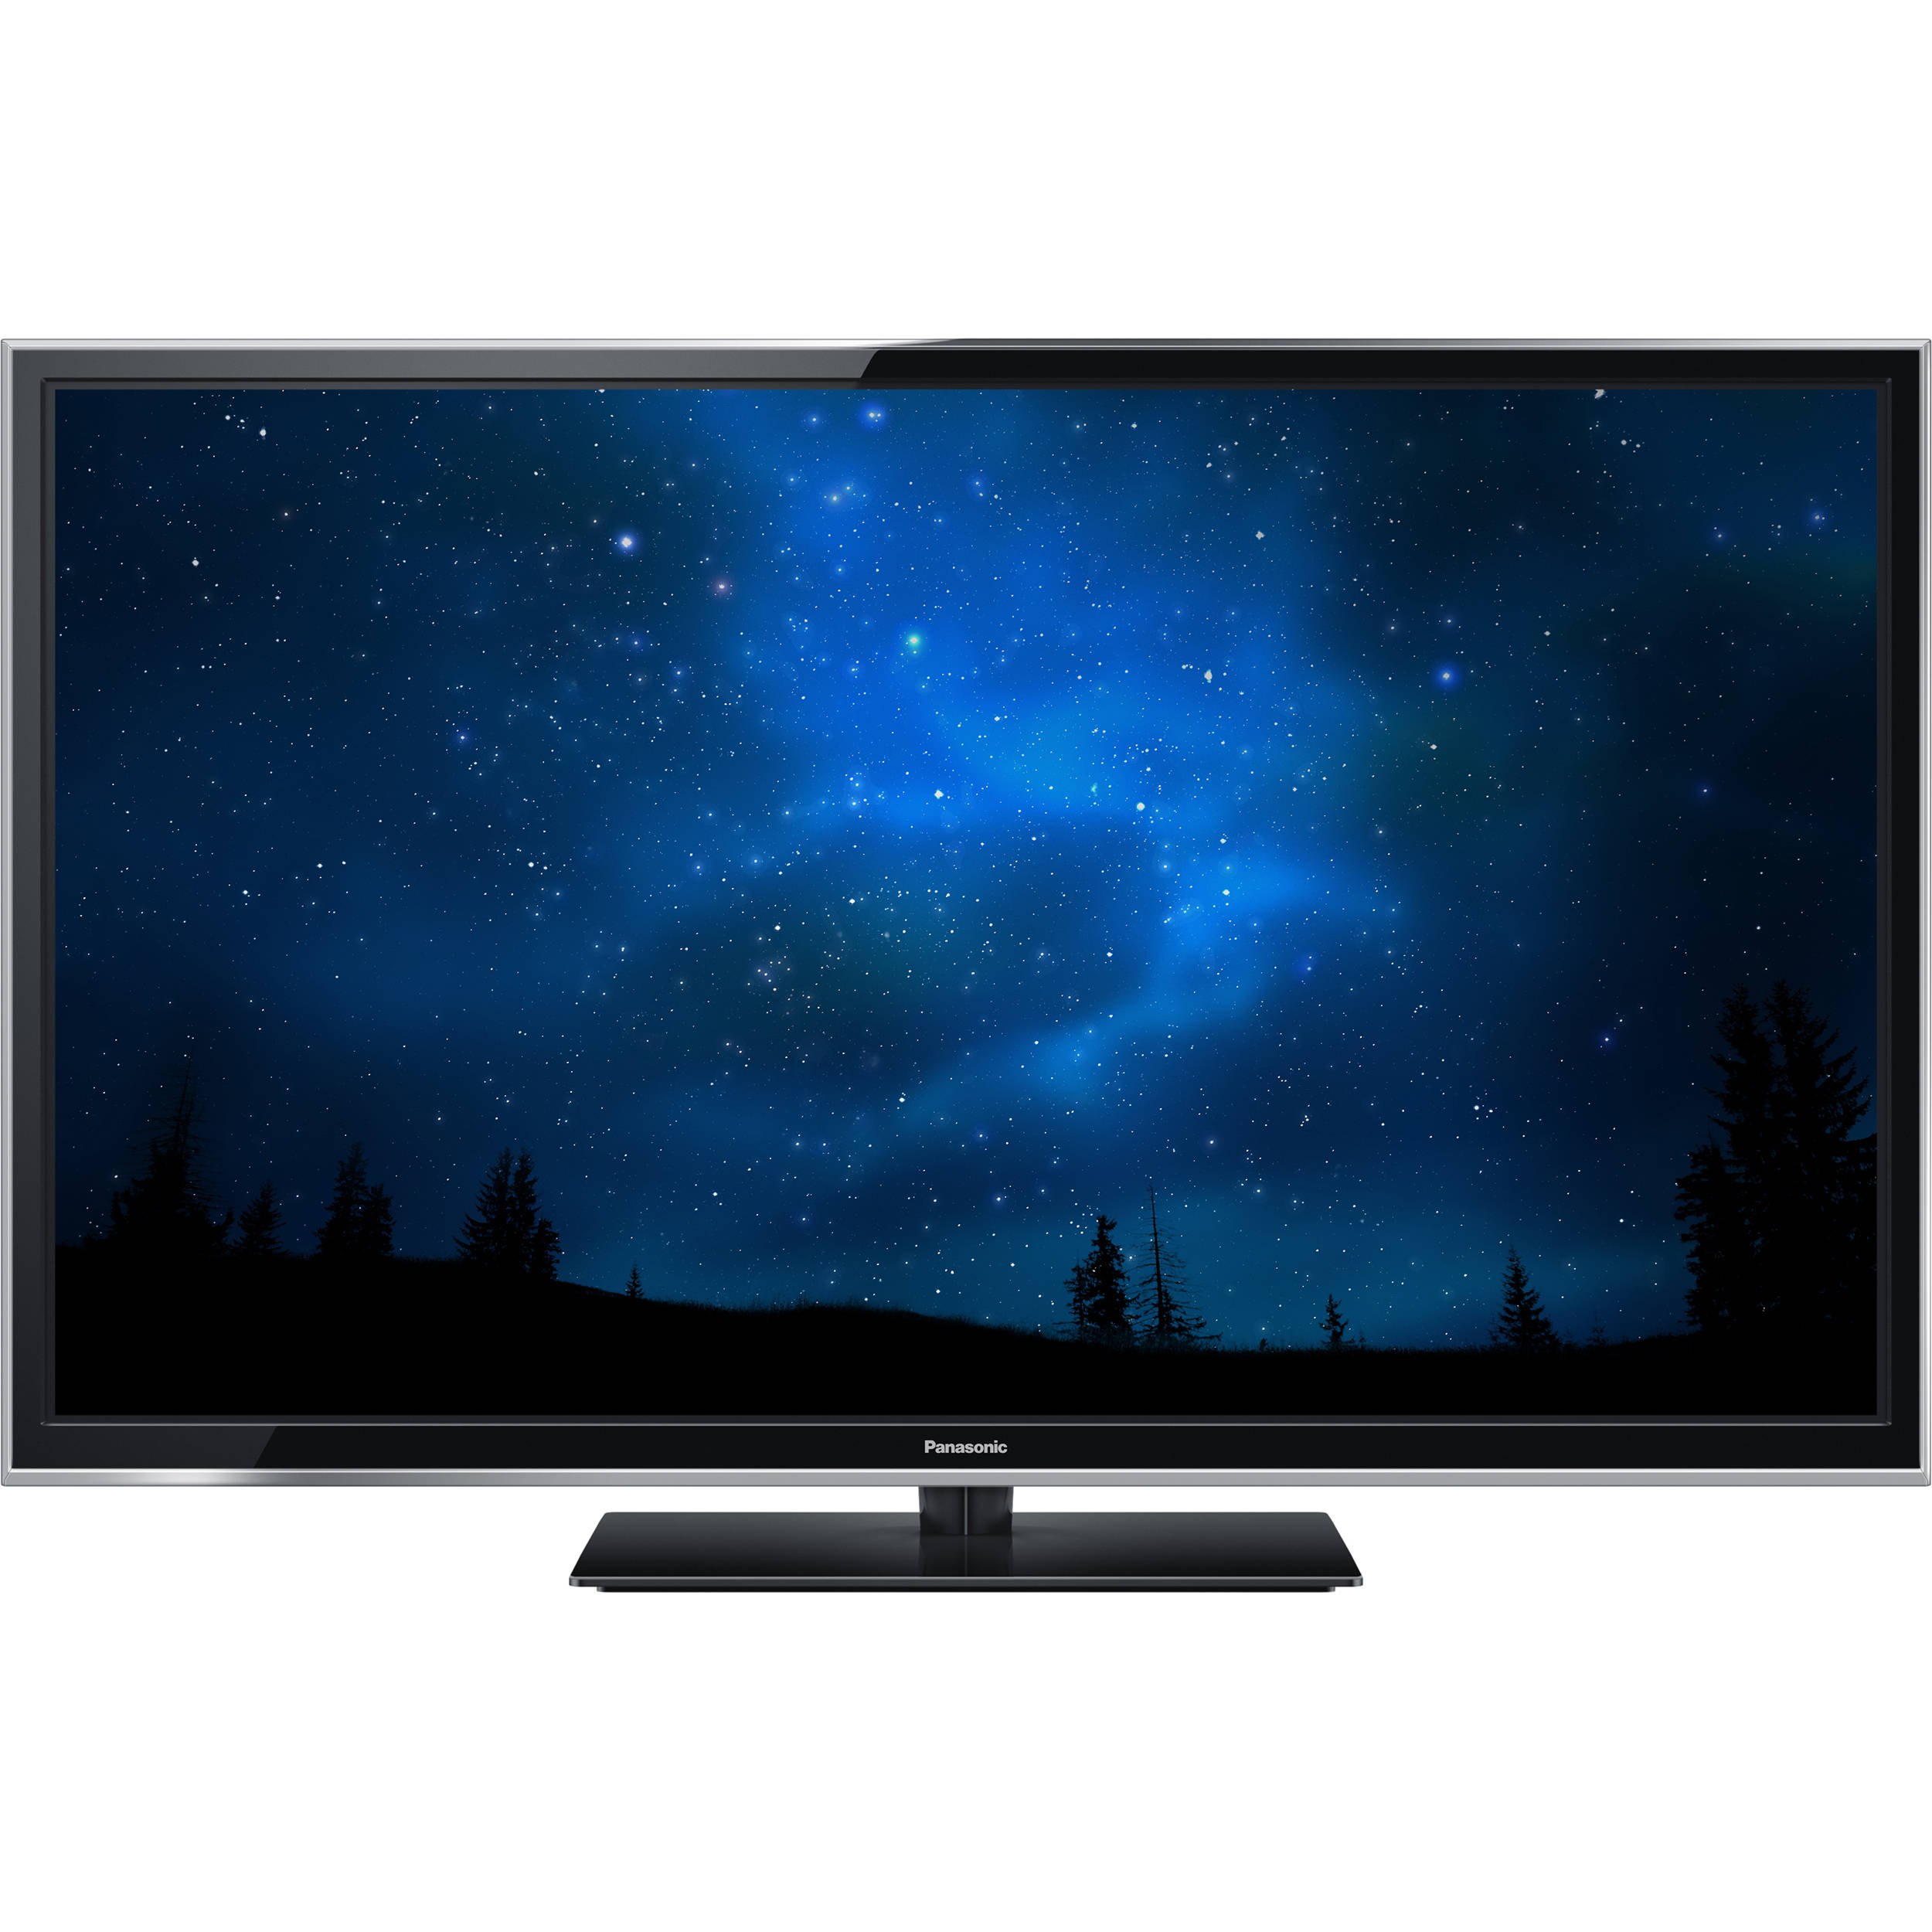 panasonic 65 viera st60 series full hd plasma tv. Black Bedroom Furniture Sets. Home Design Ideas